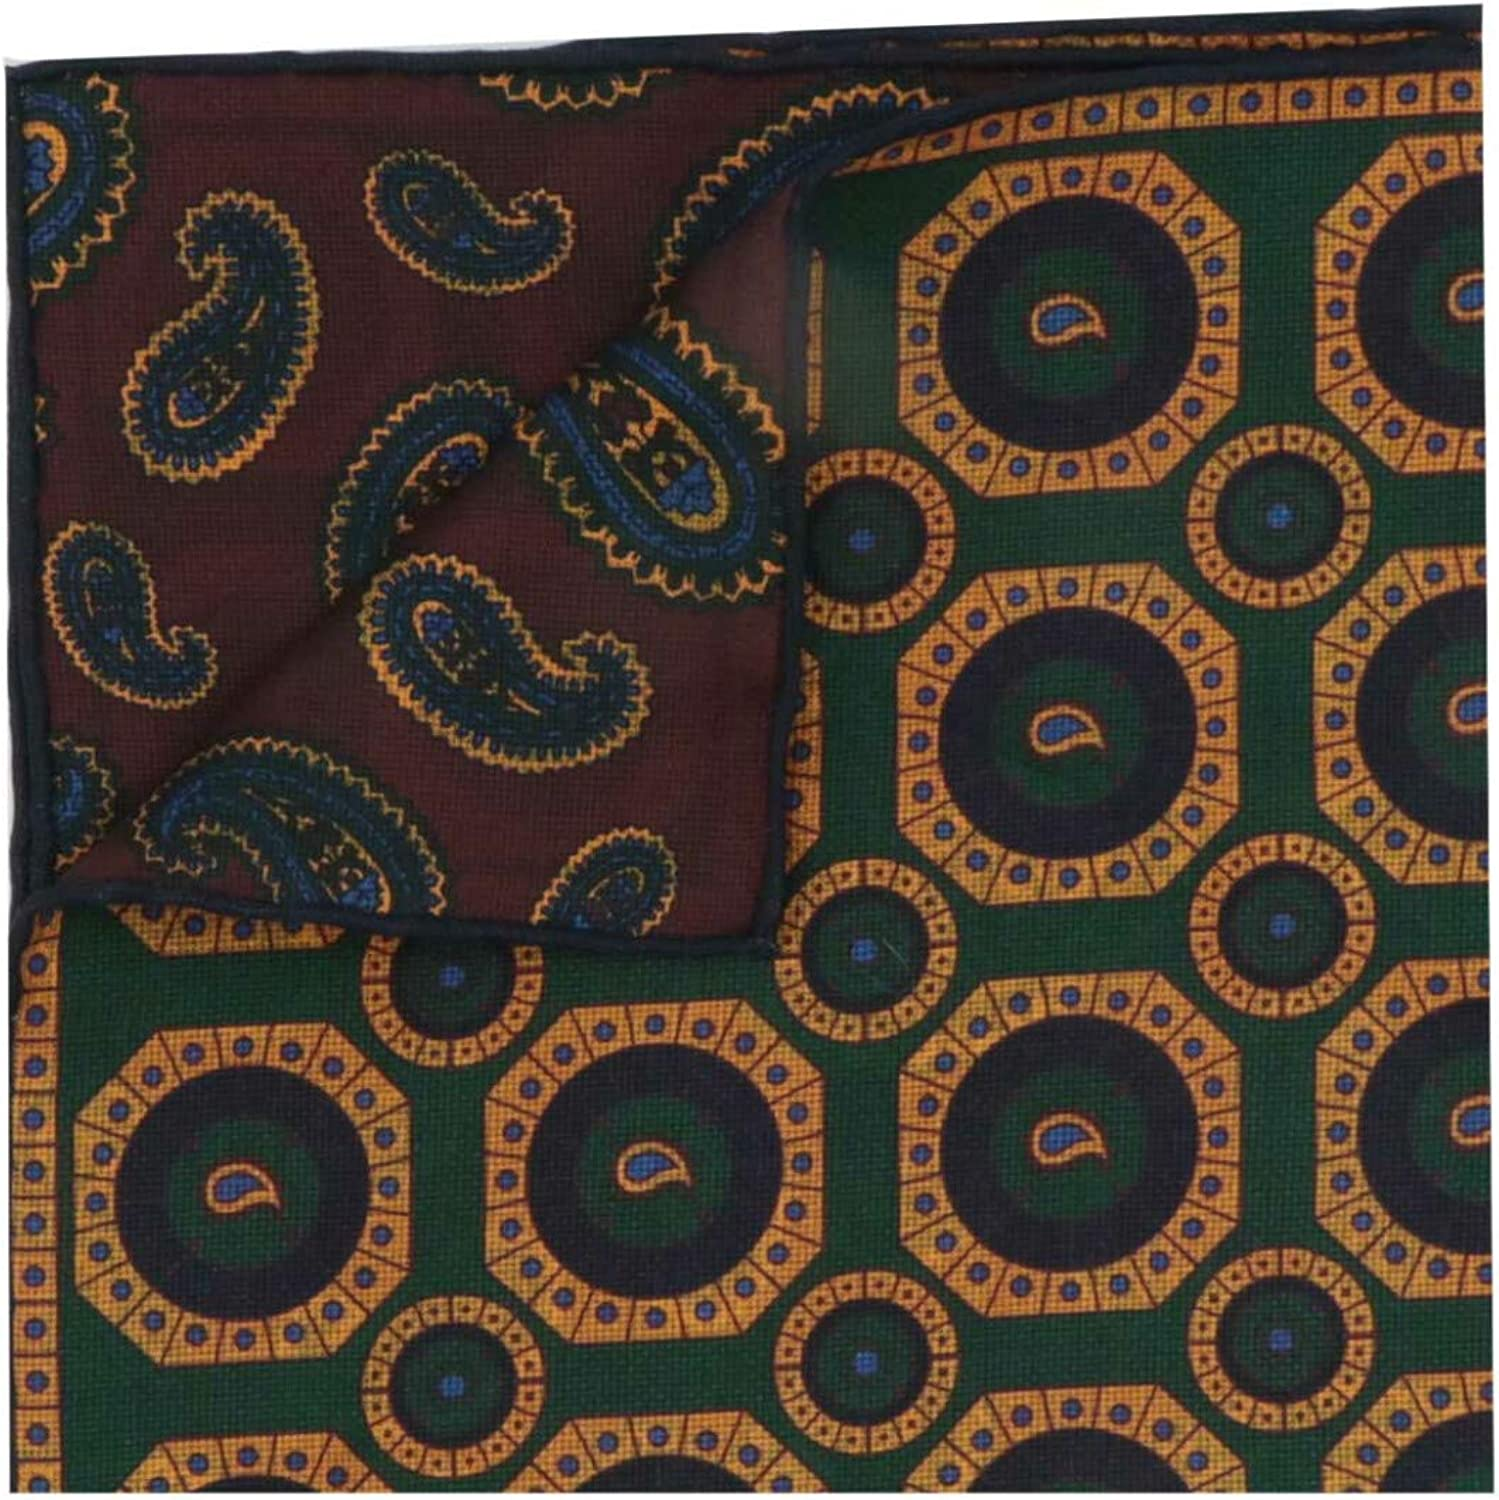 Seaward & Stearn Men's Silk Double Sided Paisley and Egyptian Collar Meda Pocket Square